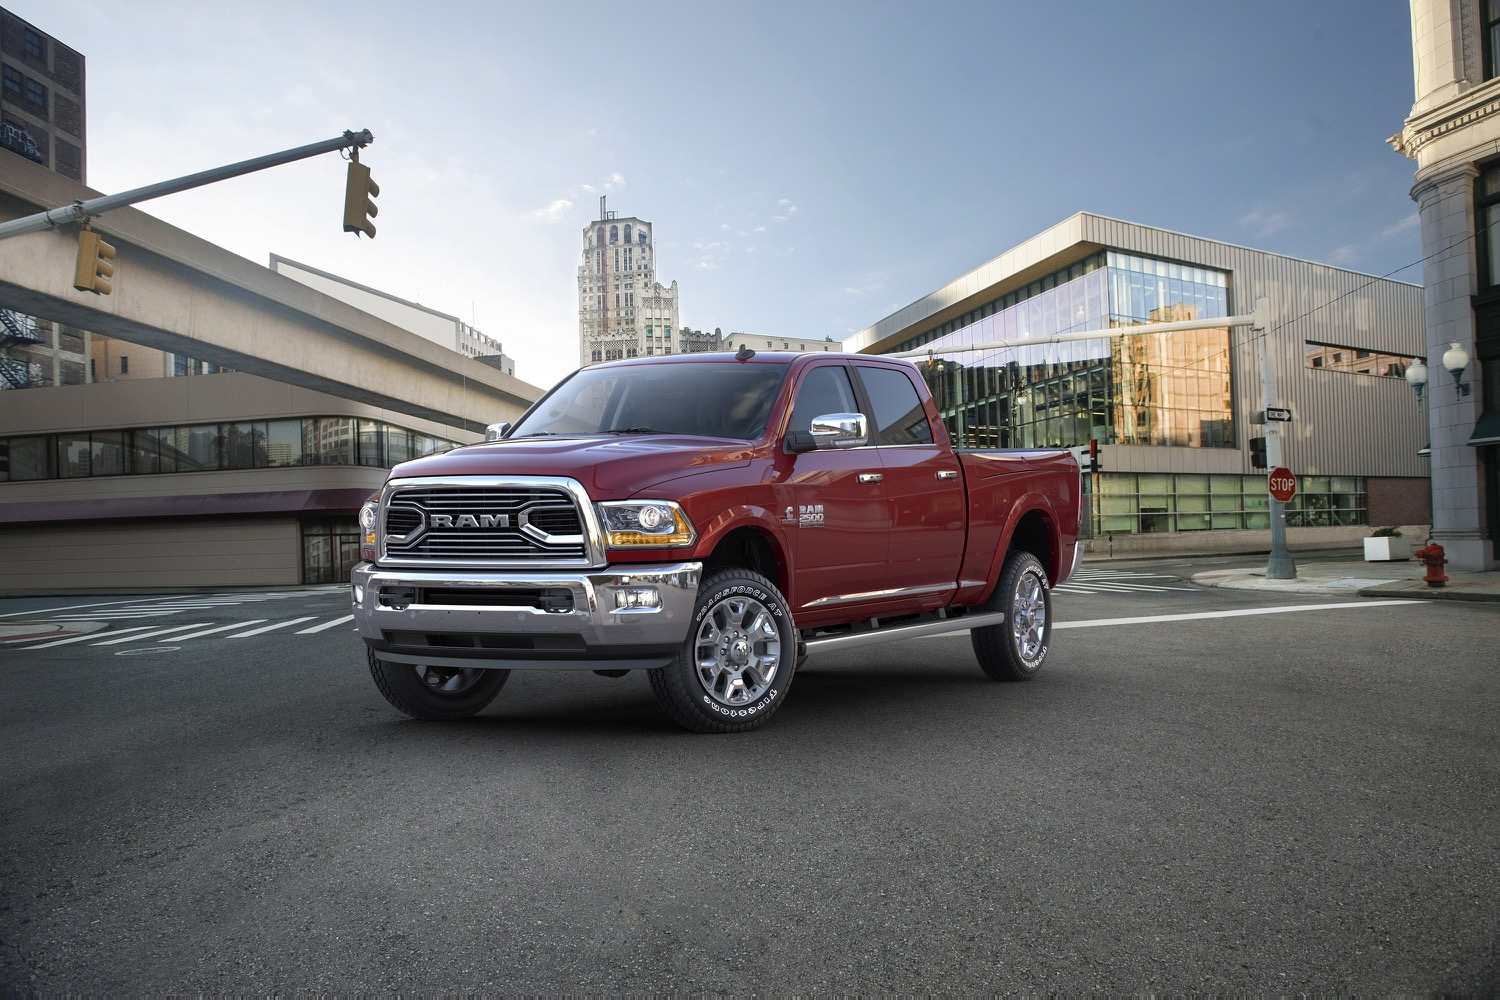 dallas dodge chrysler jeep ram 2017 ram 2500. Cars Review. Best American Auto & Cars Review